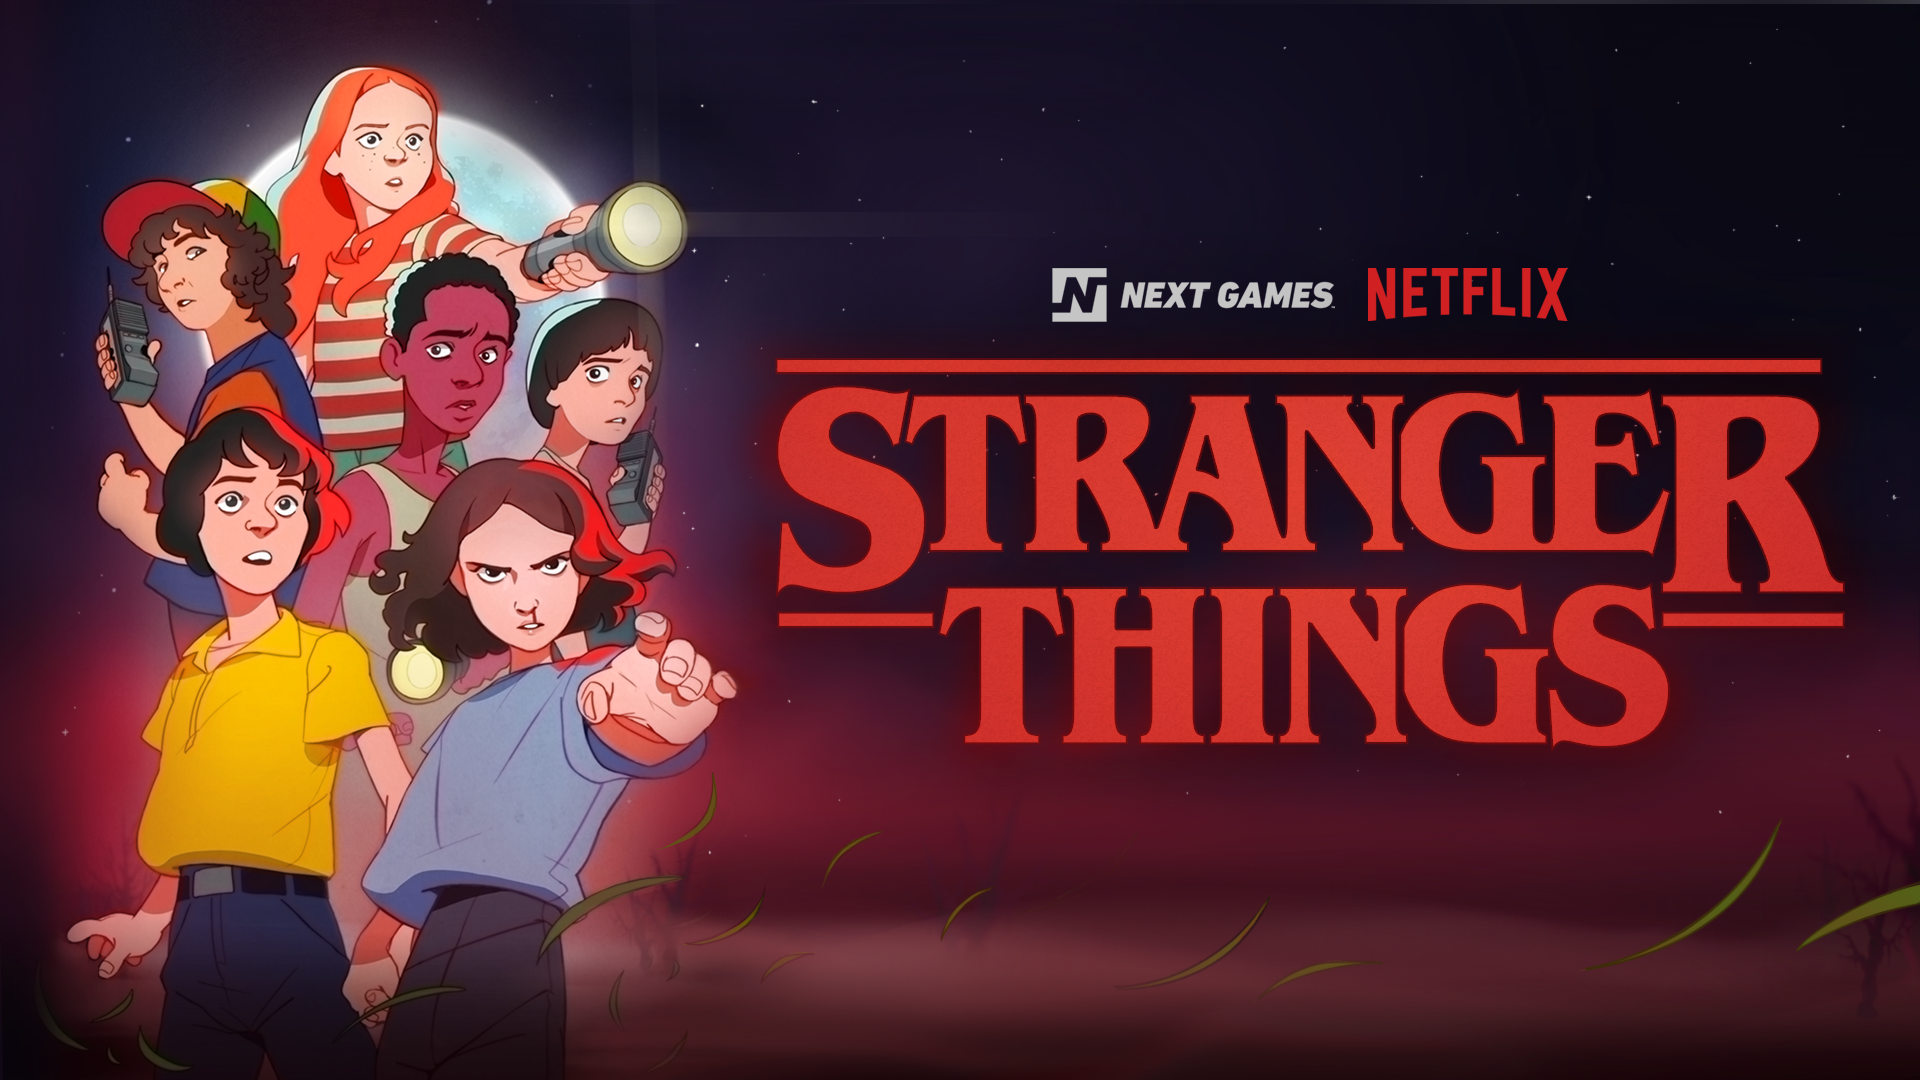 Best Mobile Rpg 2020 Stranger Things location based RPG to arrive on iOS and Android in